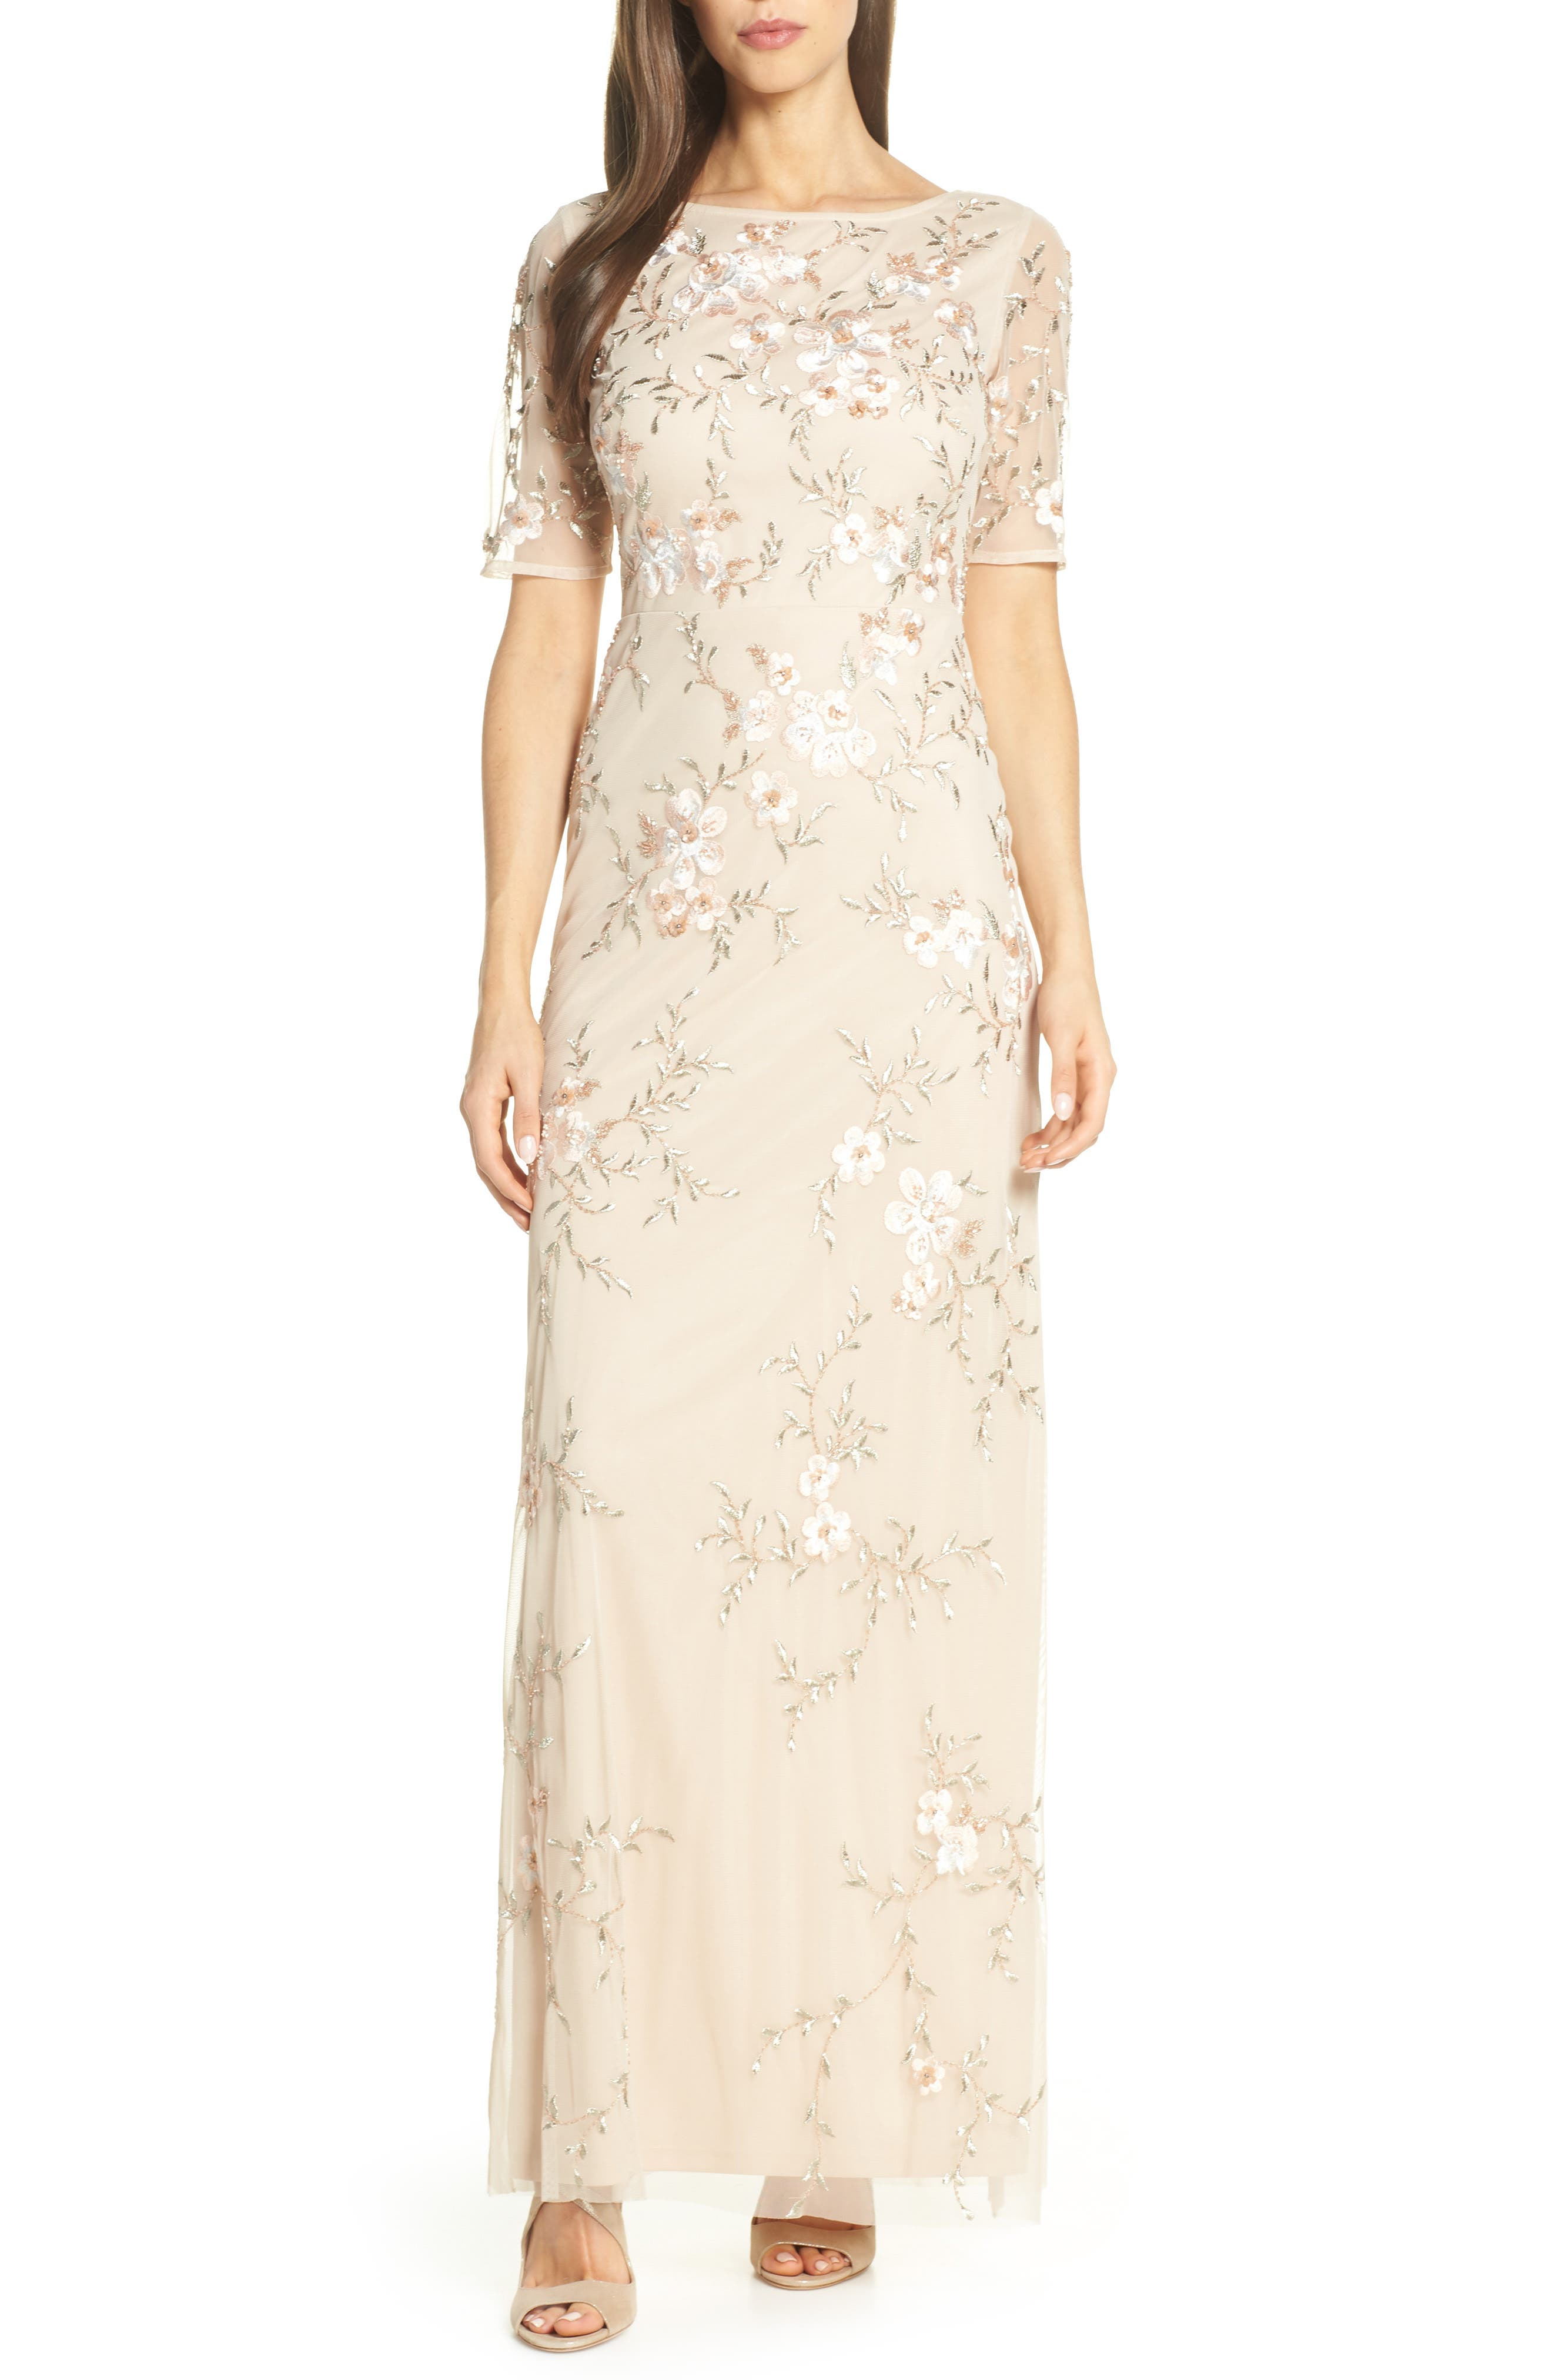 Adrianna Papell Embroidered Mesh Evening Dress, Beige